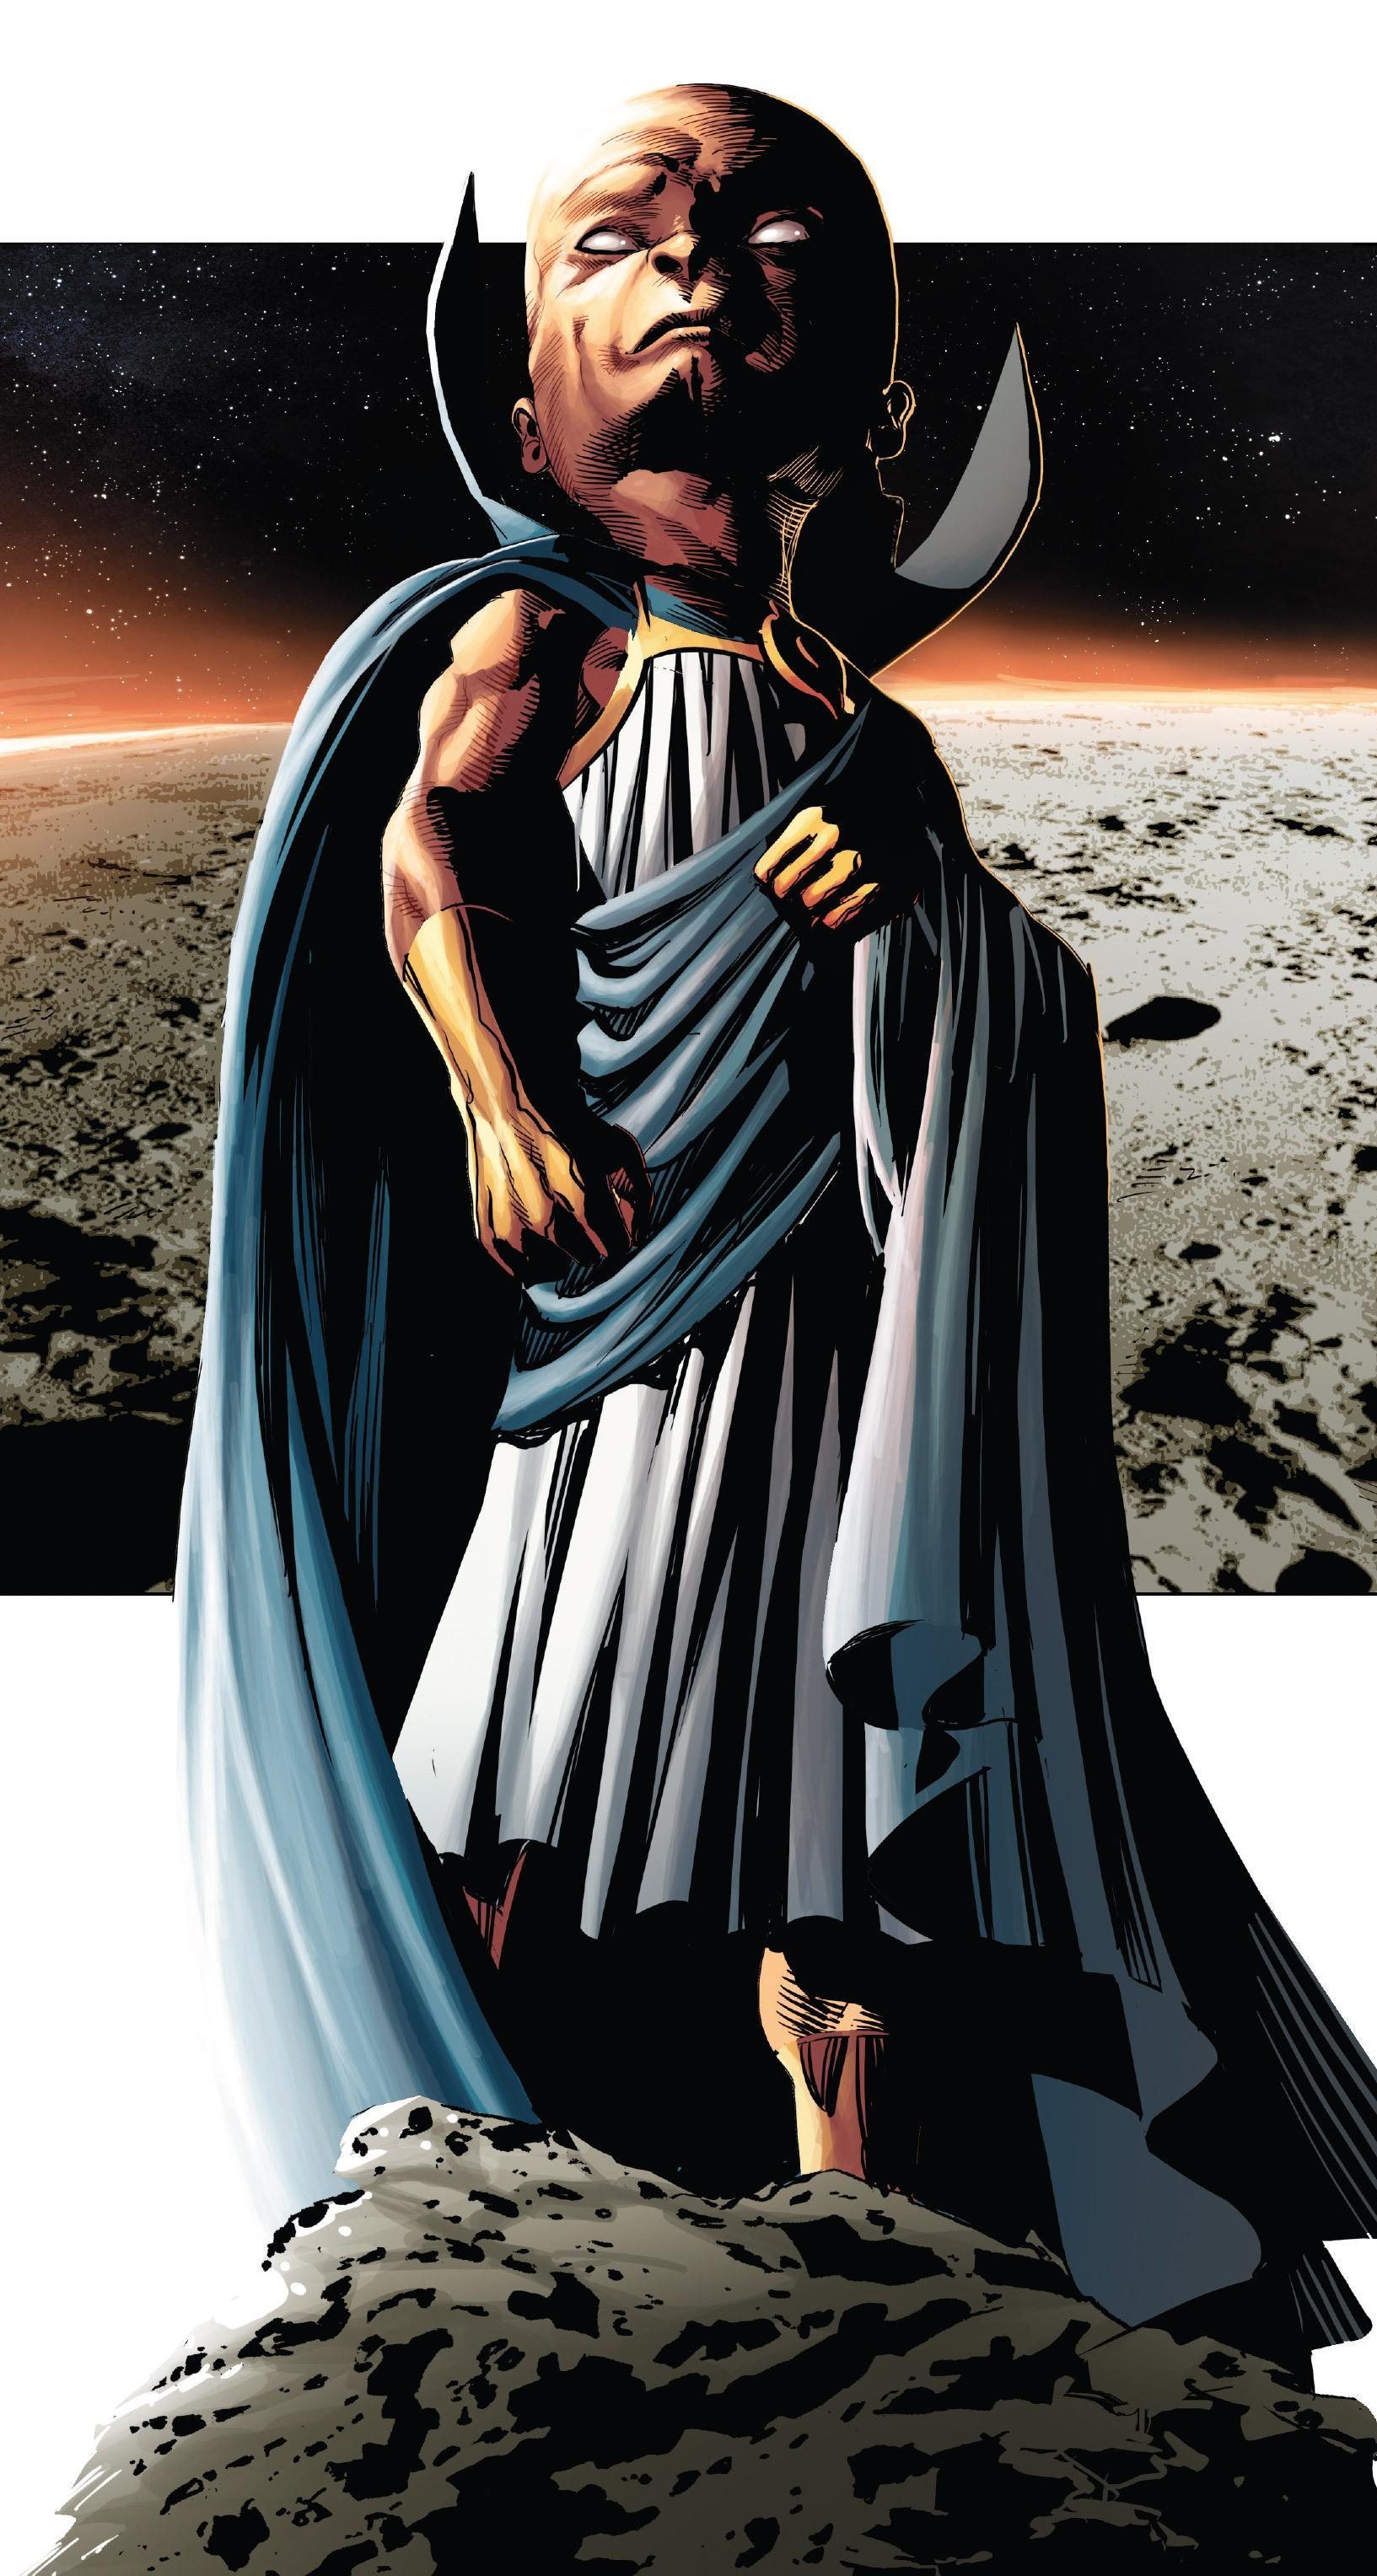 Uatu (Earth-616) | Marvel Database | Fandom